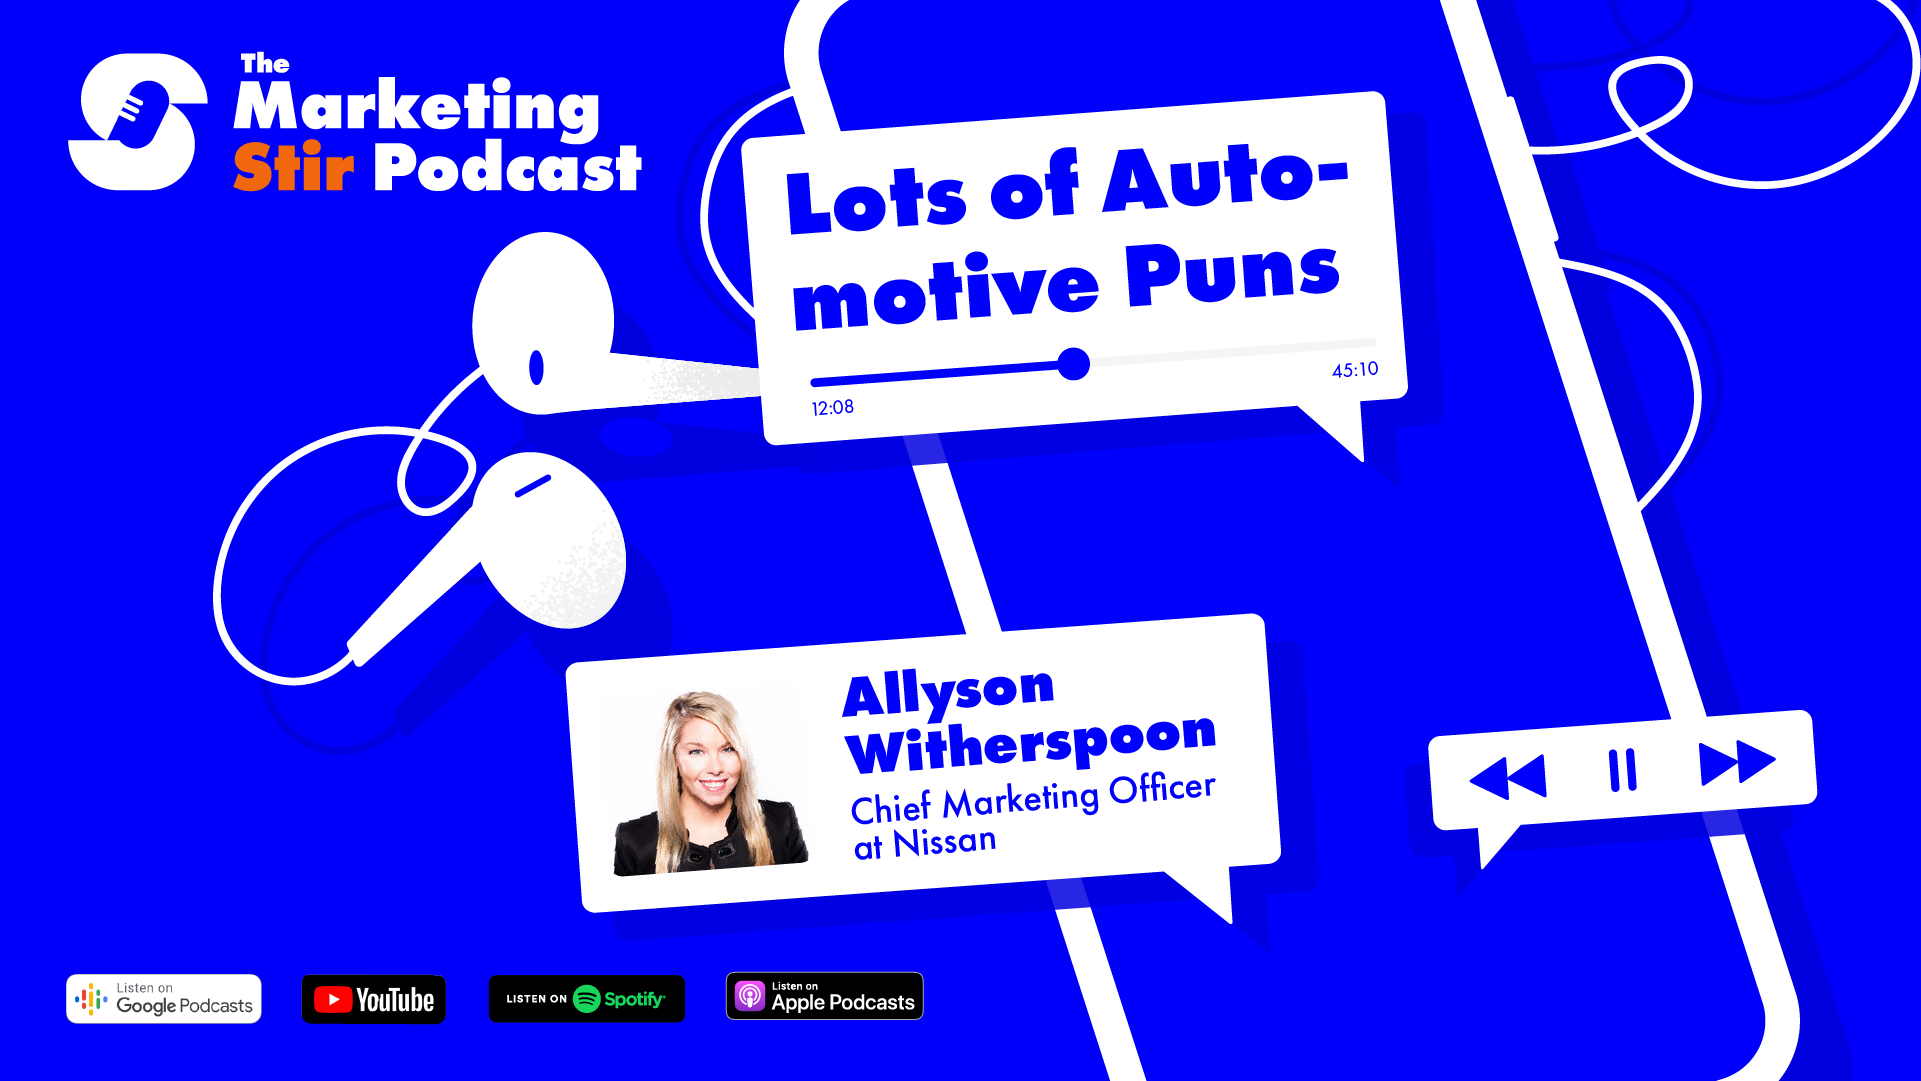 Allyson Witherspoon (Nissan) - Lots of Automotive Puns